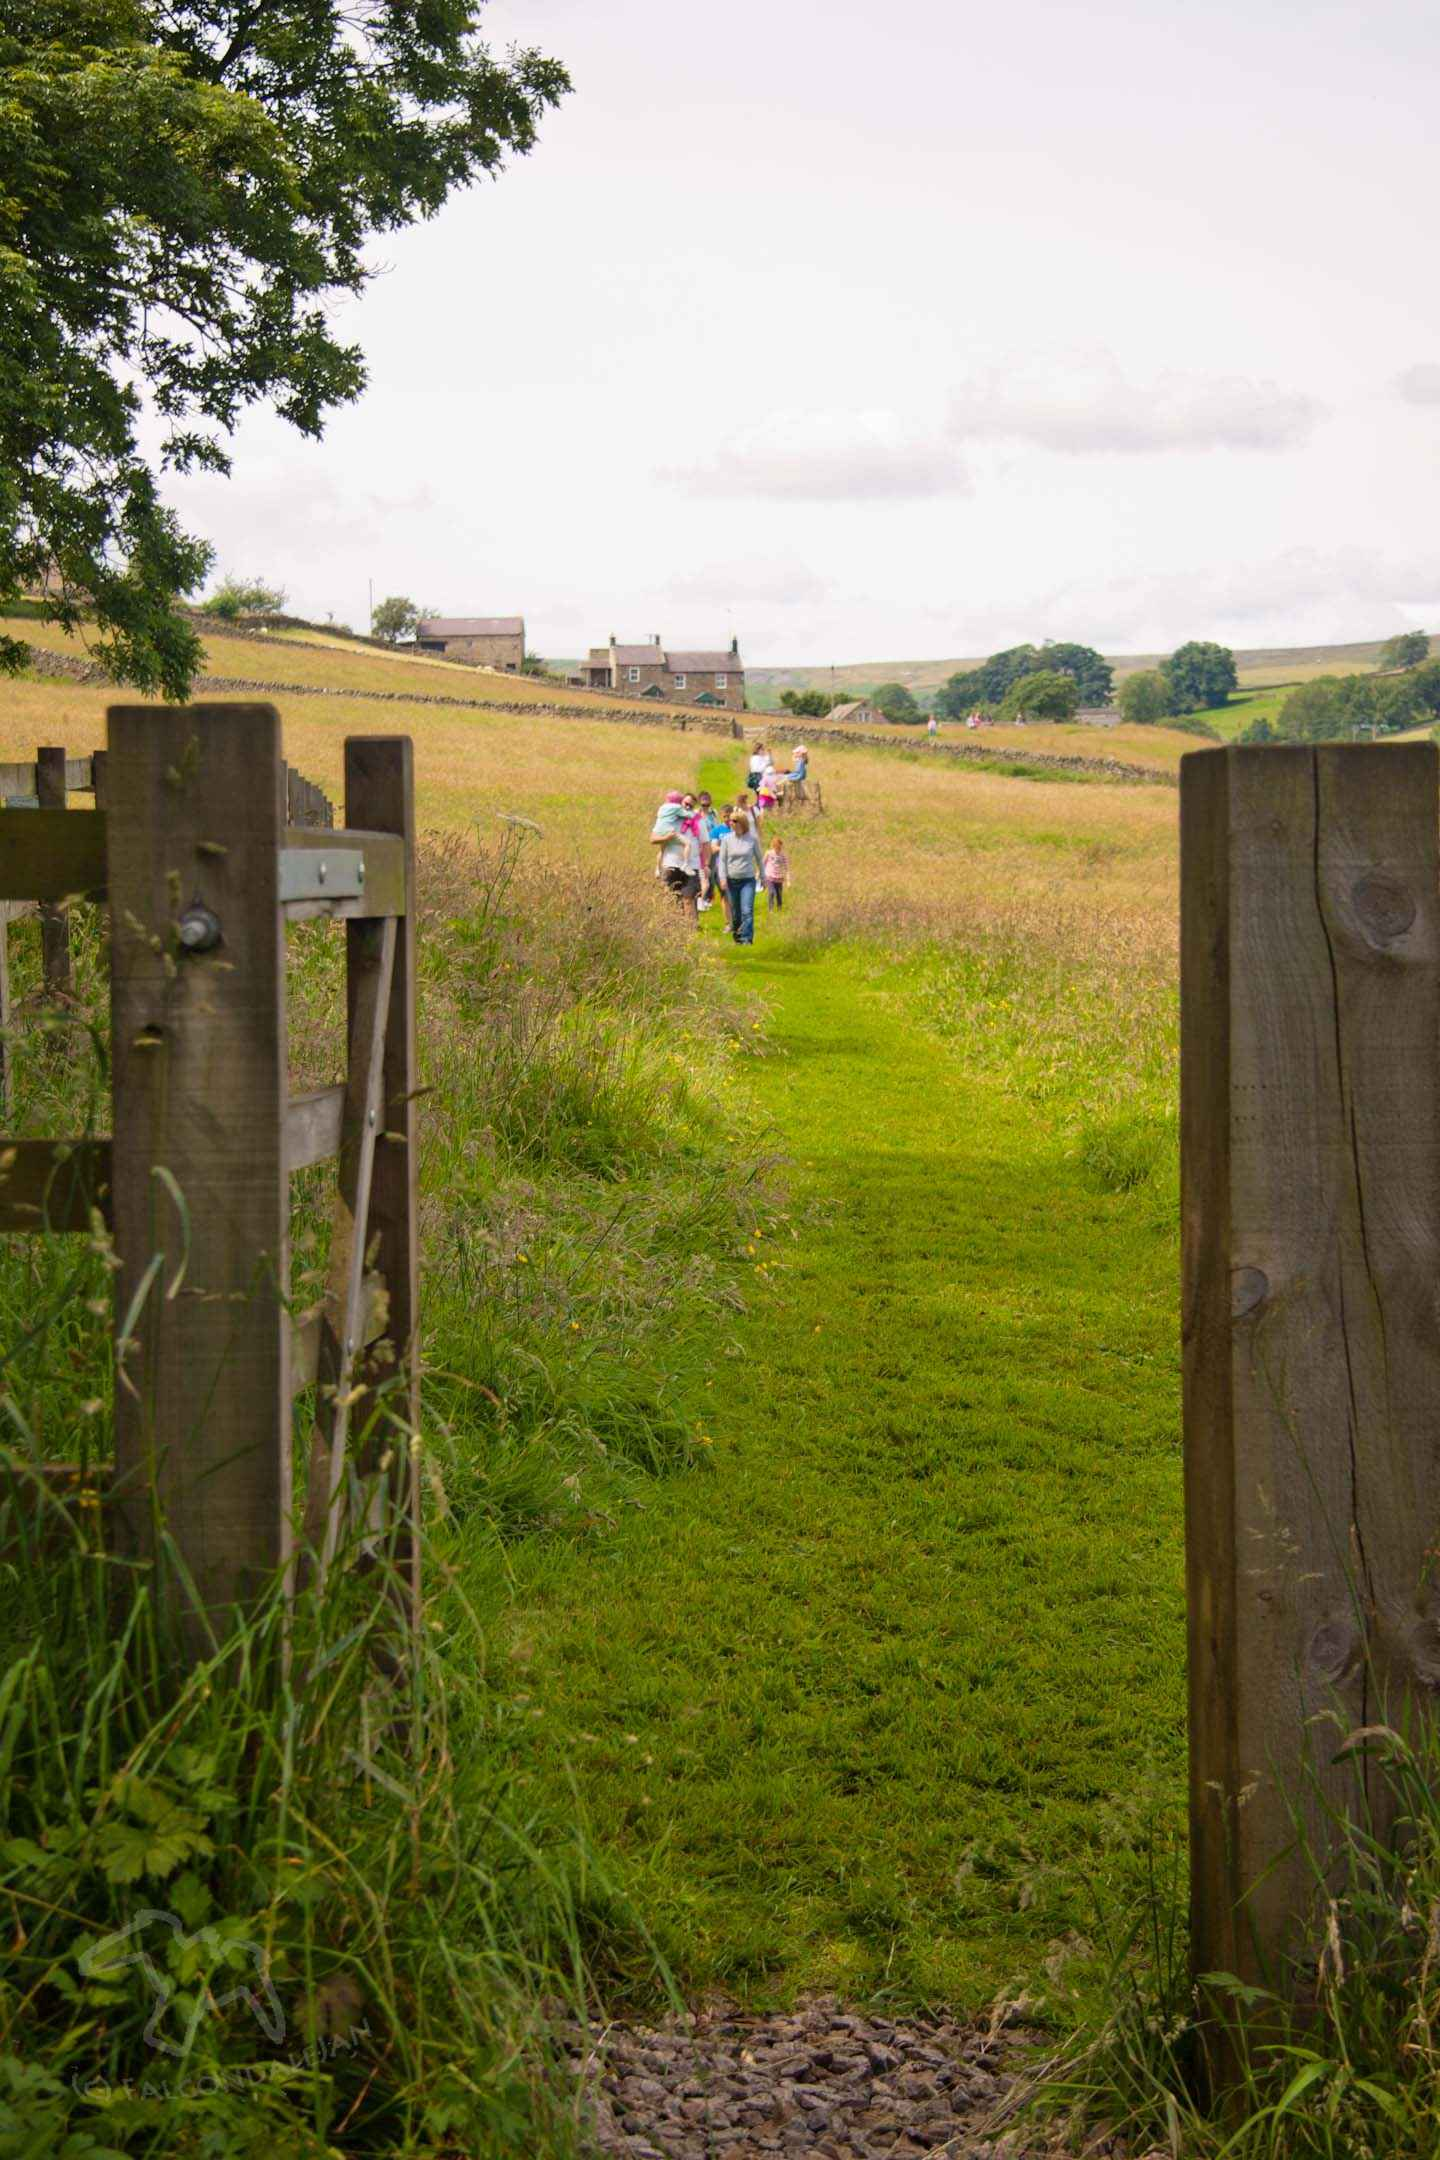 Ideas and tips for a vacation that's suitable for sensitive people. Where could we take an anxious teenager or child on holiday? Plan calmer family travel. Image description: grassy path through summer fields, Yorkshire.